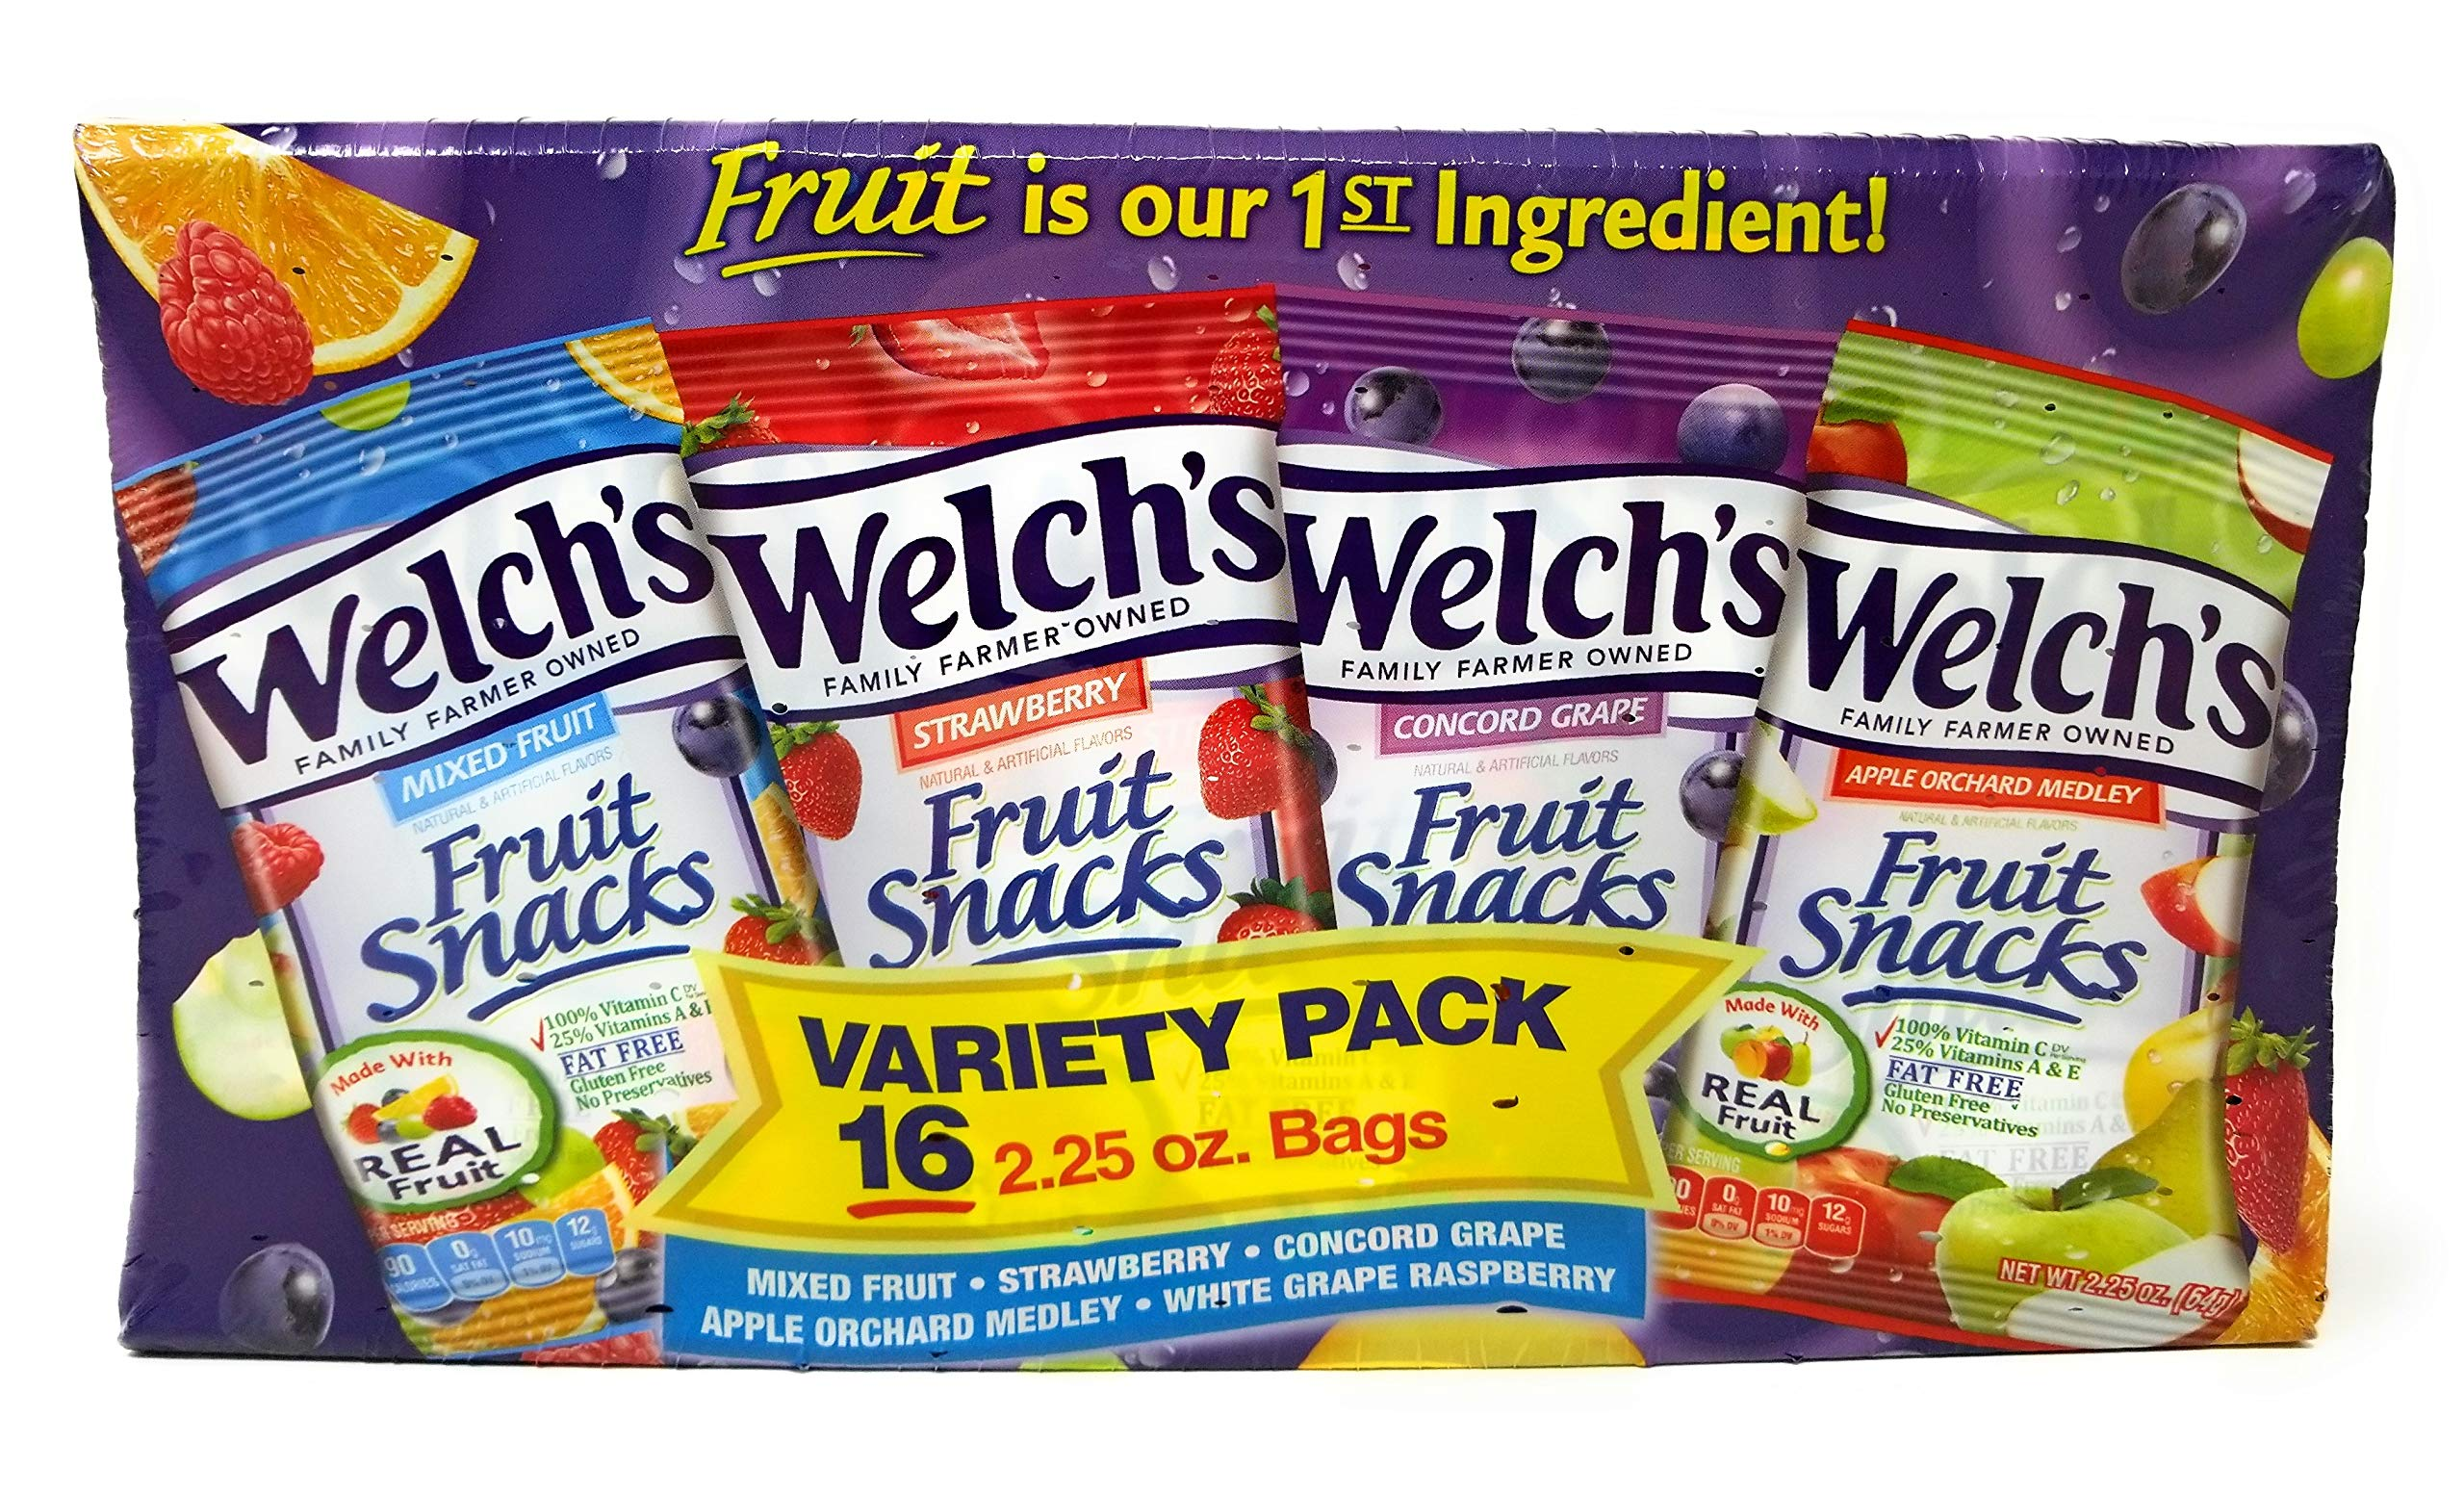 Welch's Variety Pack Bags of Fruit Snacks -  5 flavor 16 pack, 2.25 oz by Welch (Image #1)